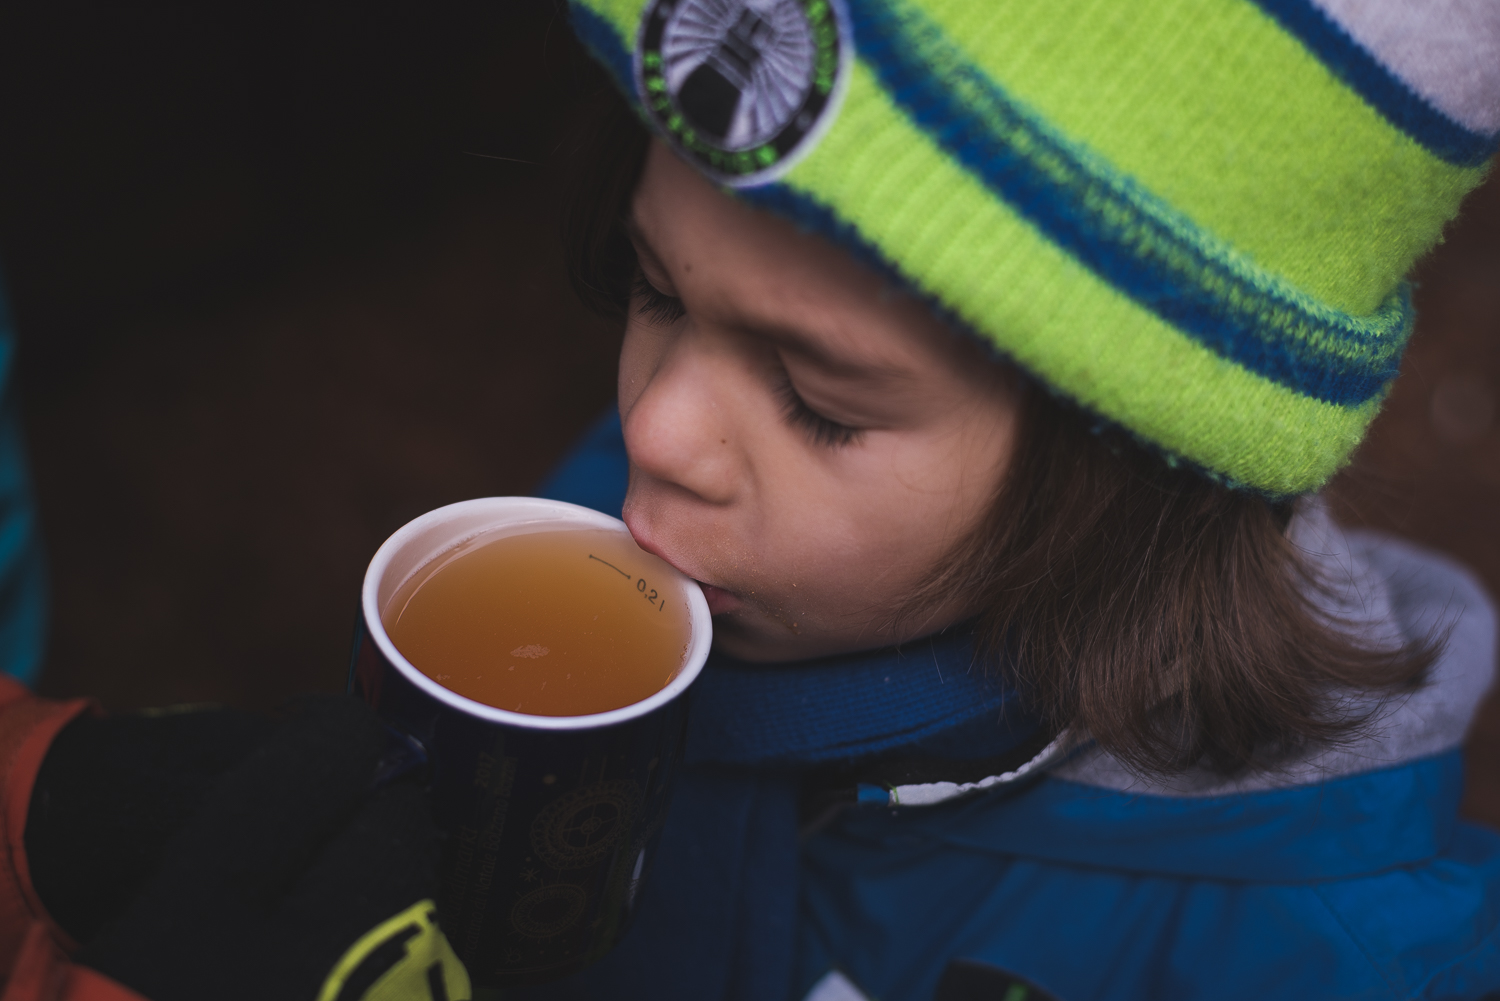 First tastes of Italy's children hot drink, hot apple juice. In Germany, it's Kinderpunch which is much different.